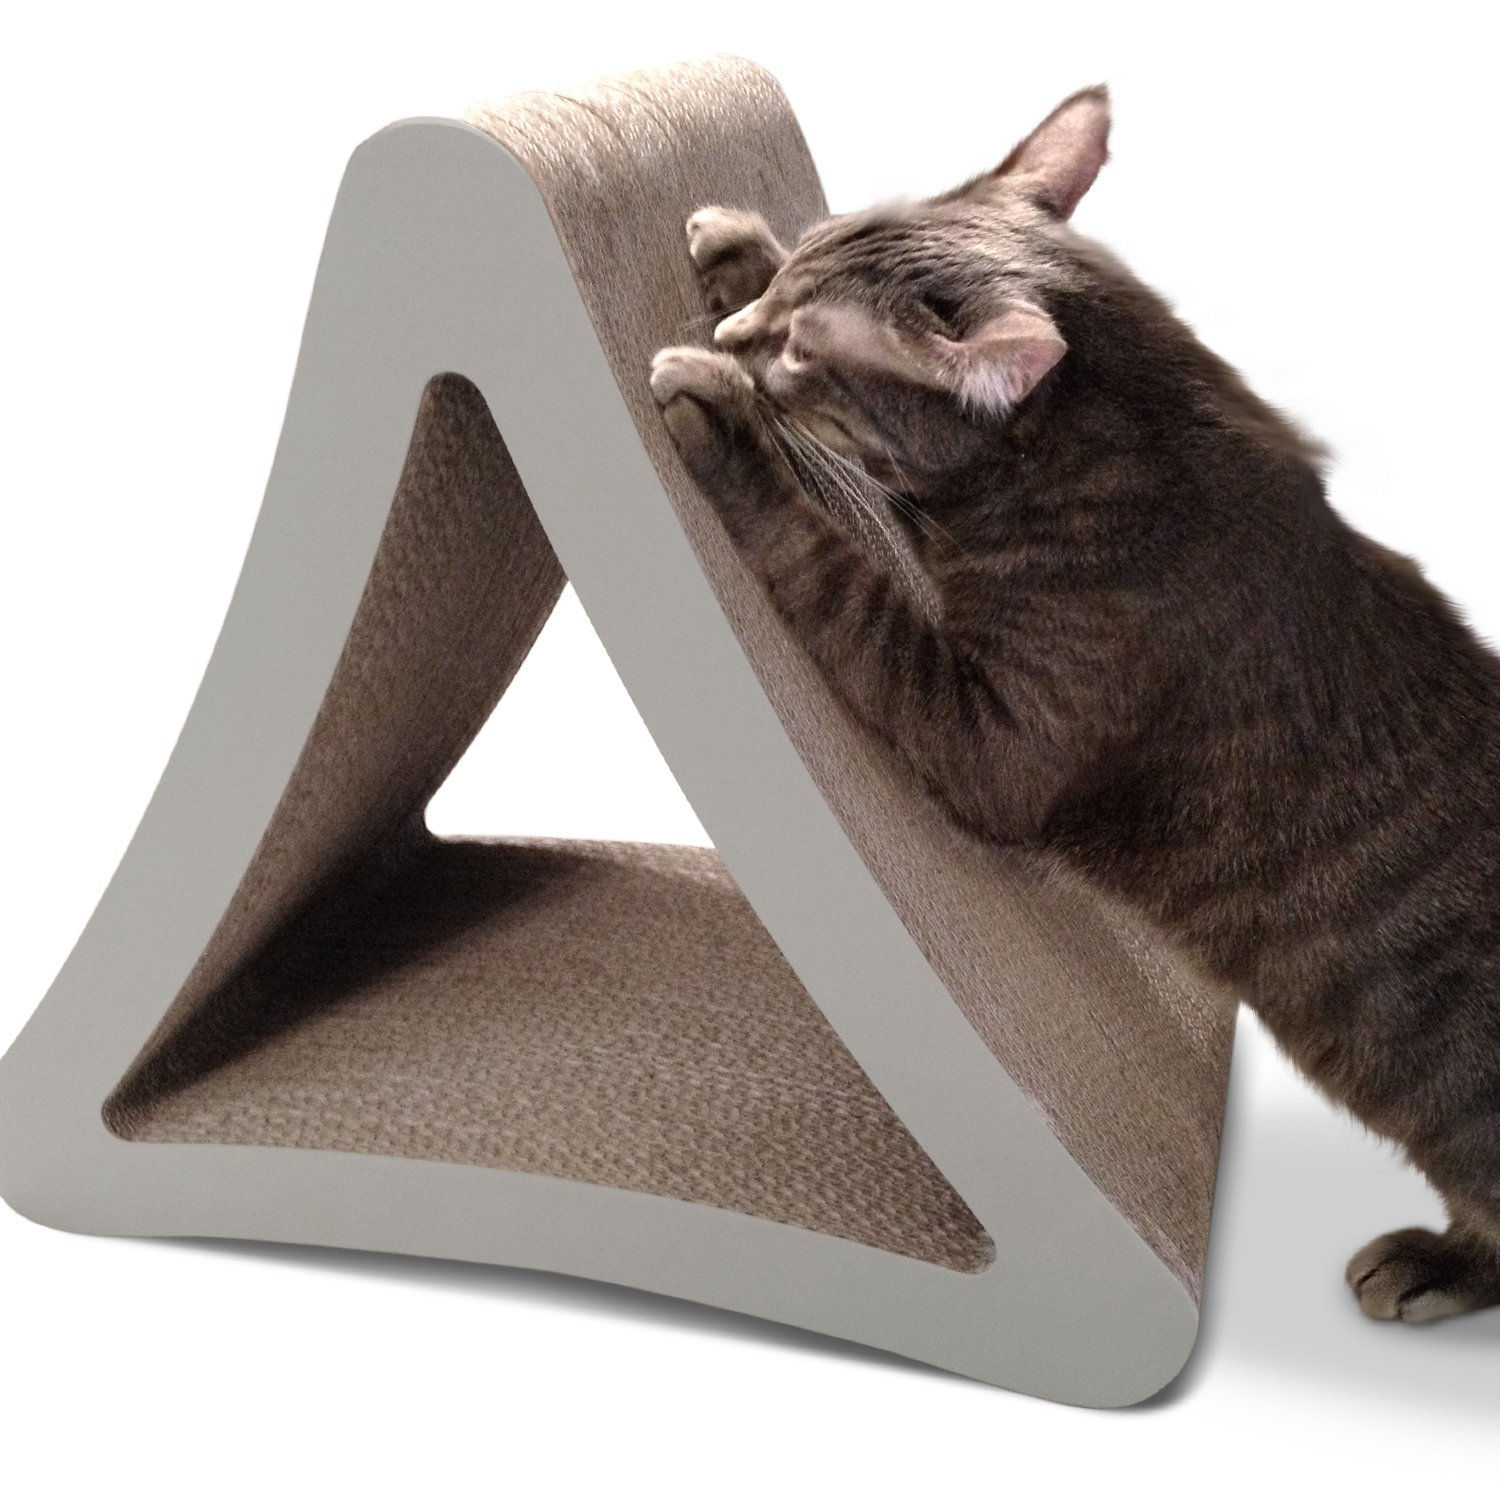 PetFusion 3-Sided Vertical Cat Scratching Post (Large Size, Warm Gray). [Multiple Scratching Angles to Match Your Cat's Preference] by PetFusion